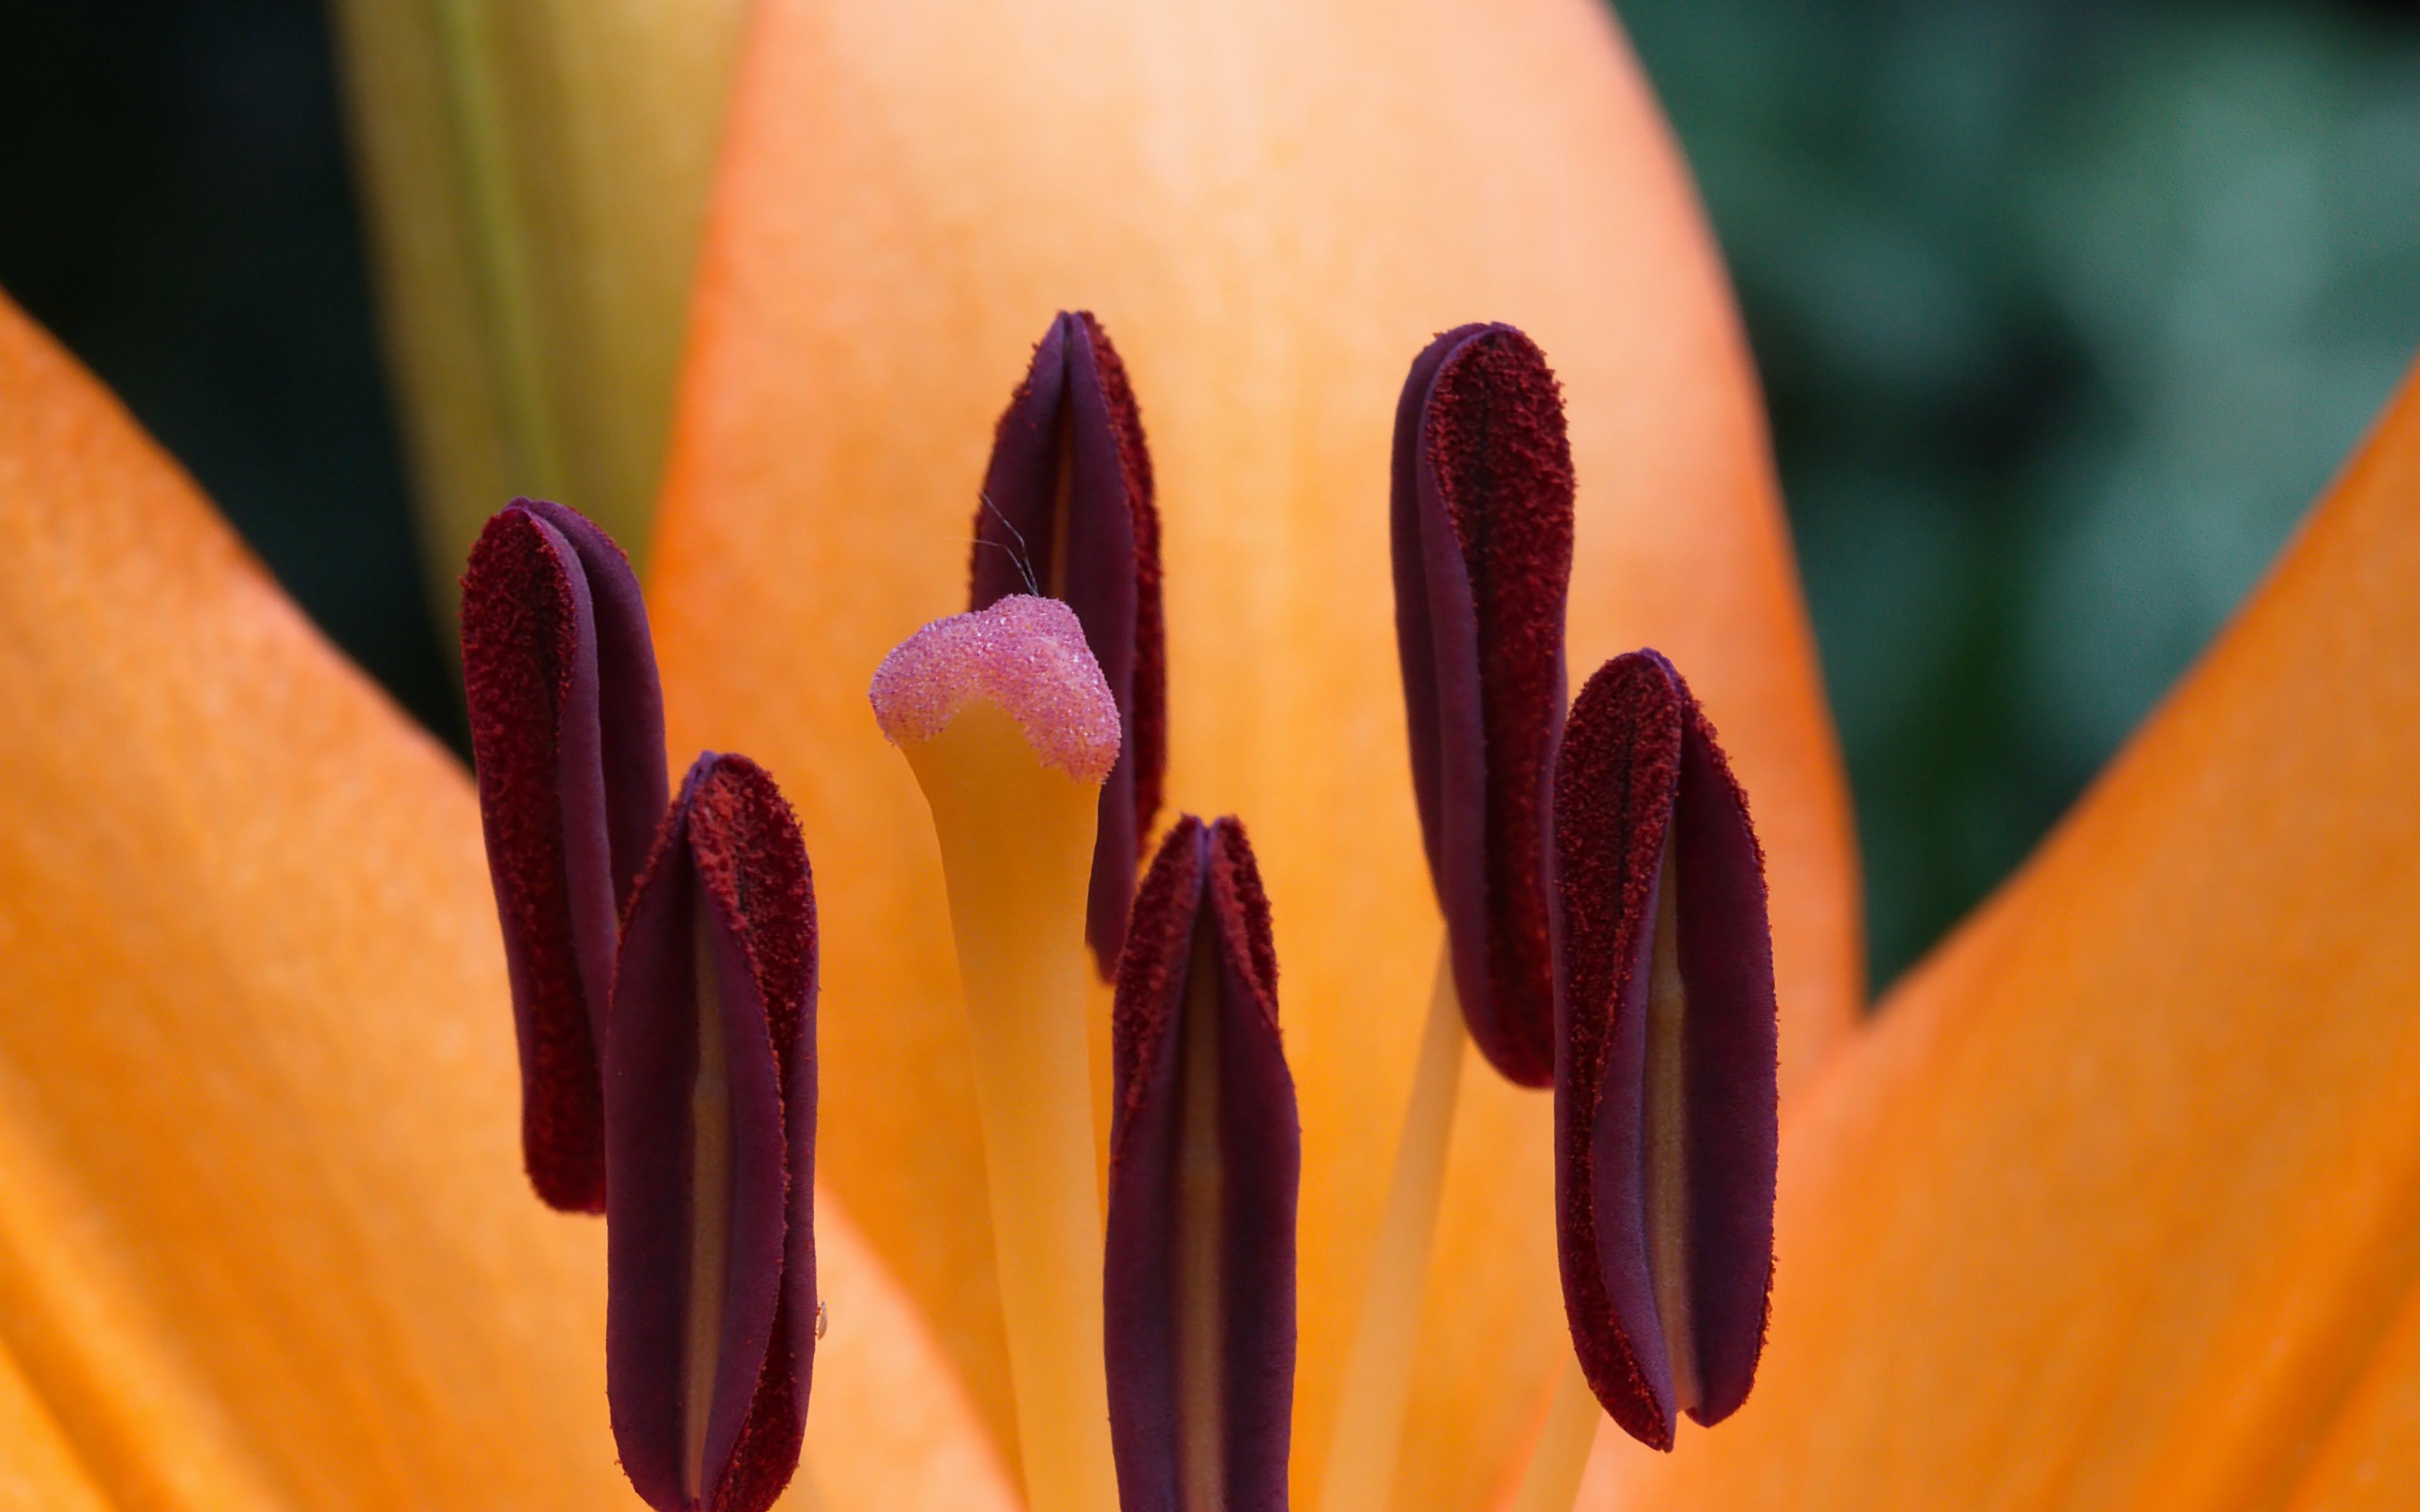 Free stock photo of close-up view, daylily, flower, macro photography